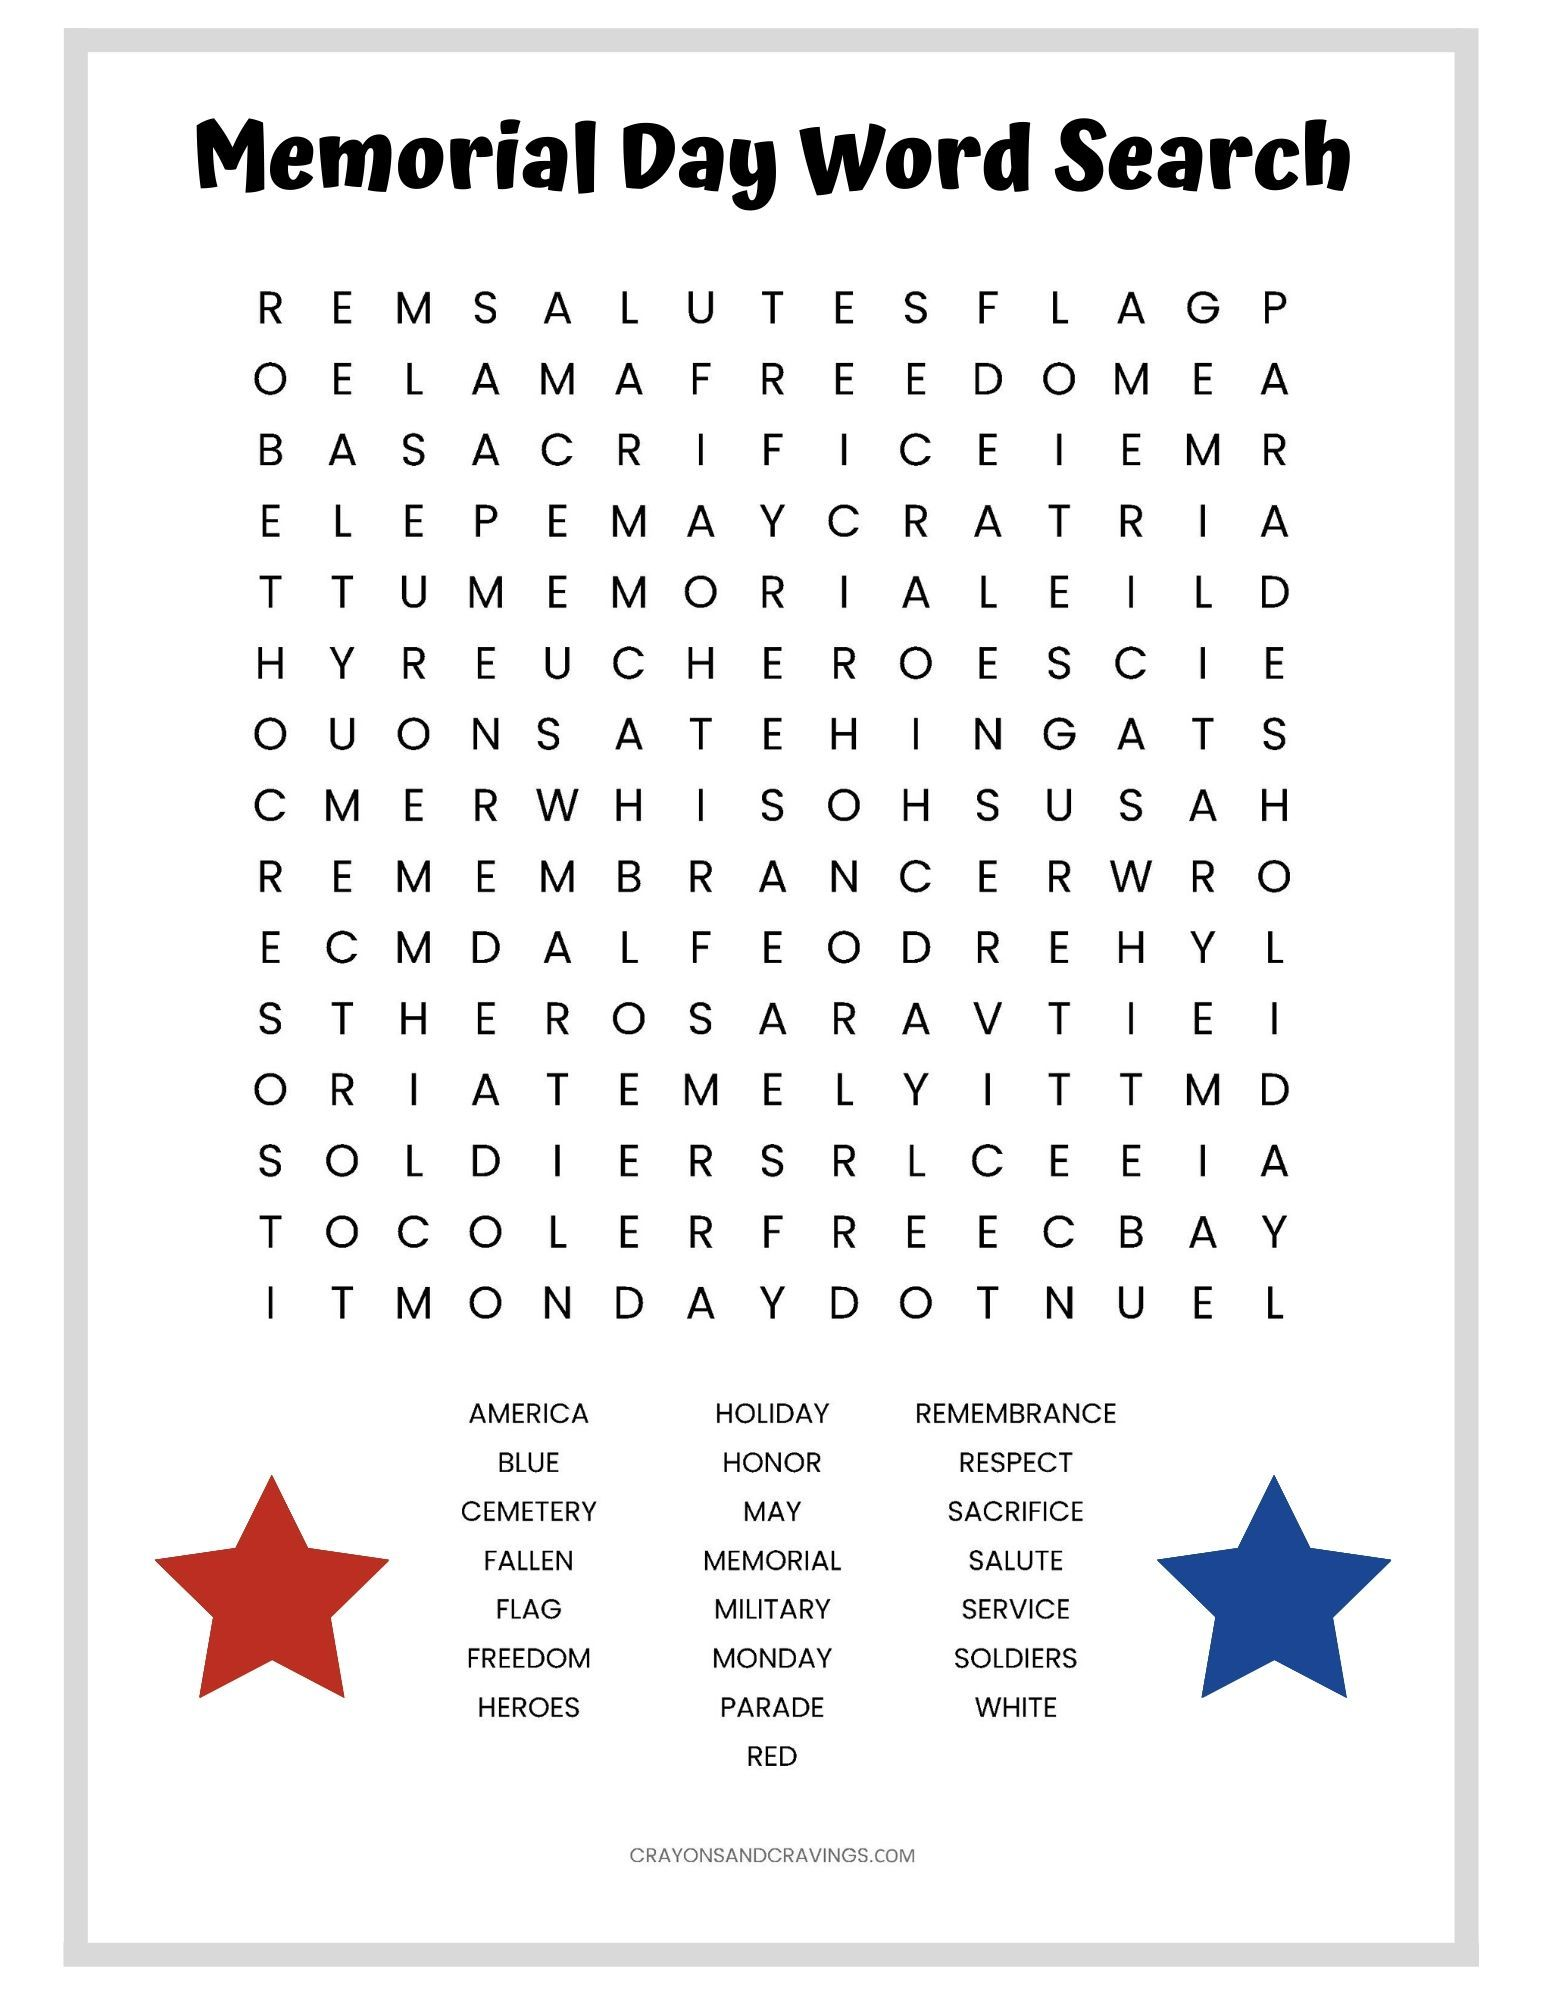 A Memorial Day word search free printable with 22 words to ...